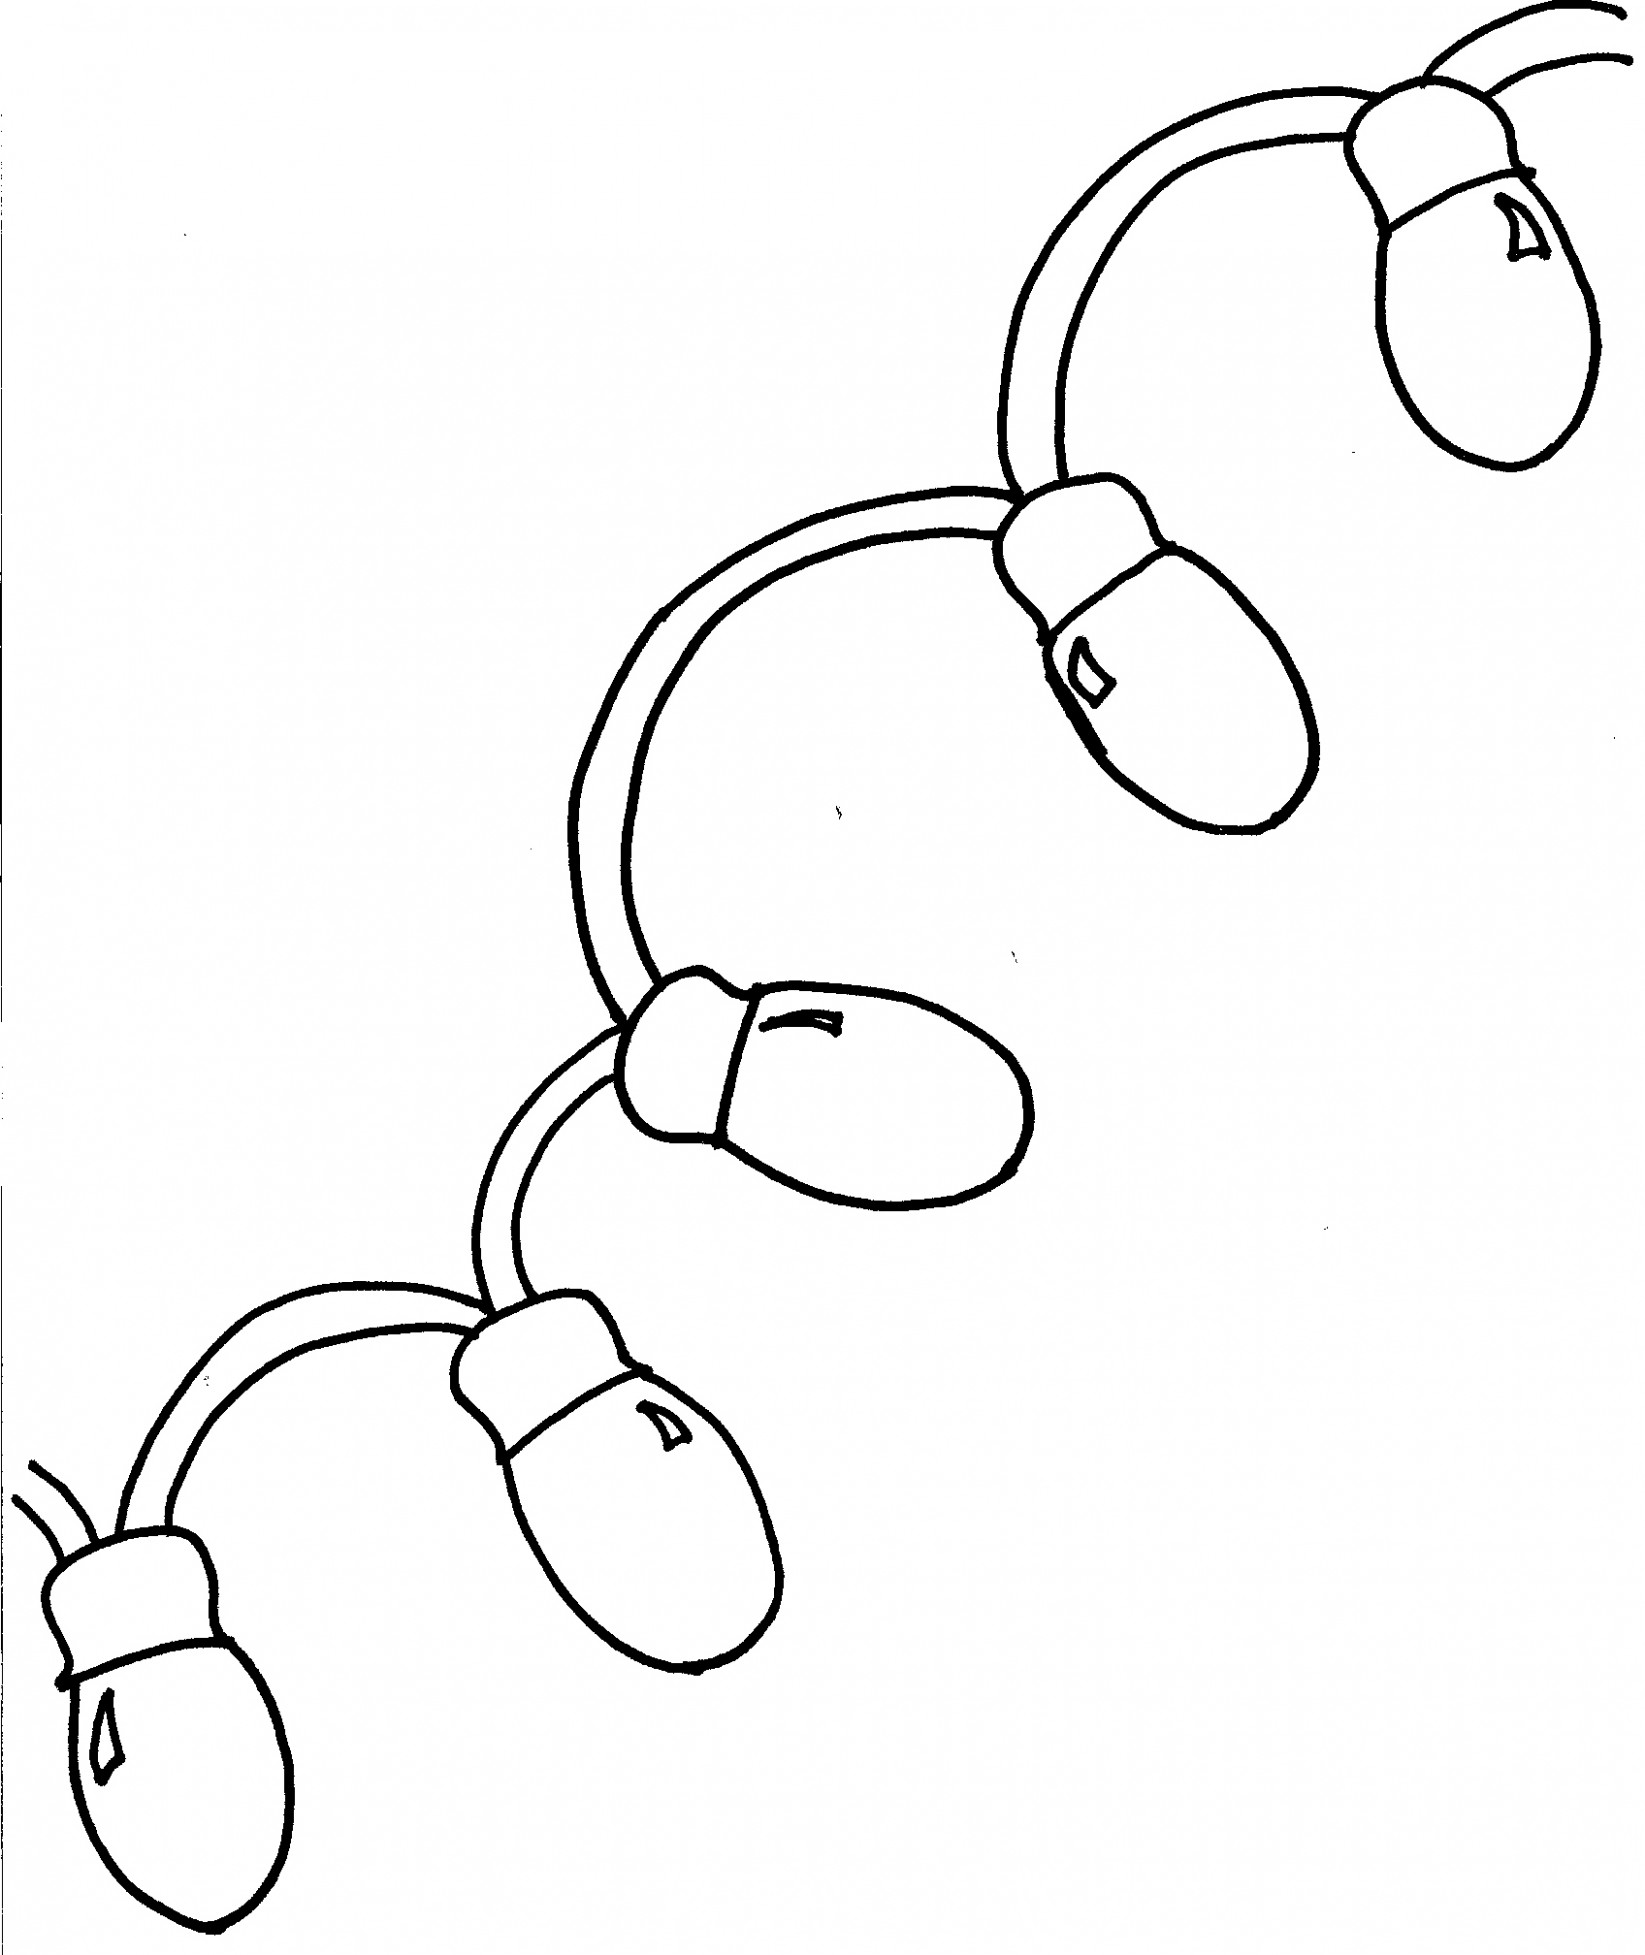 Christmas lights coloring pages – Coloring pages for kids – Christmas Lights Coloring Pages Print